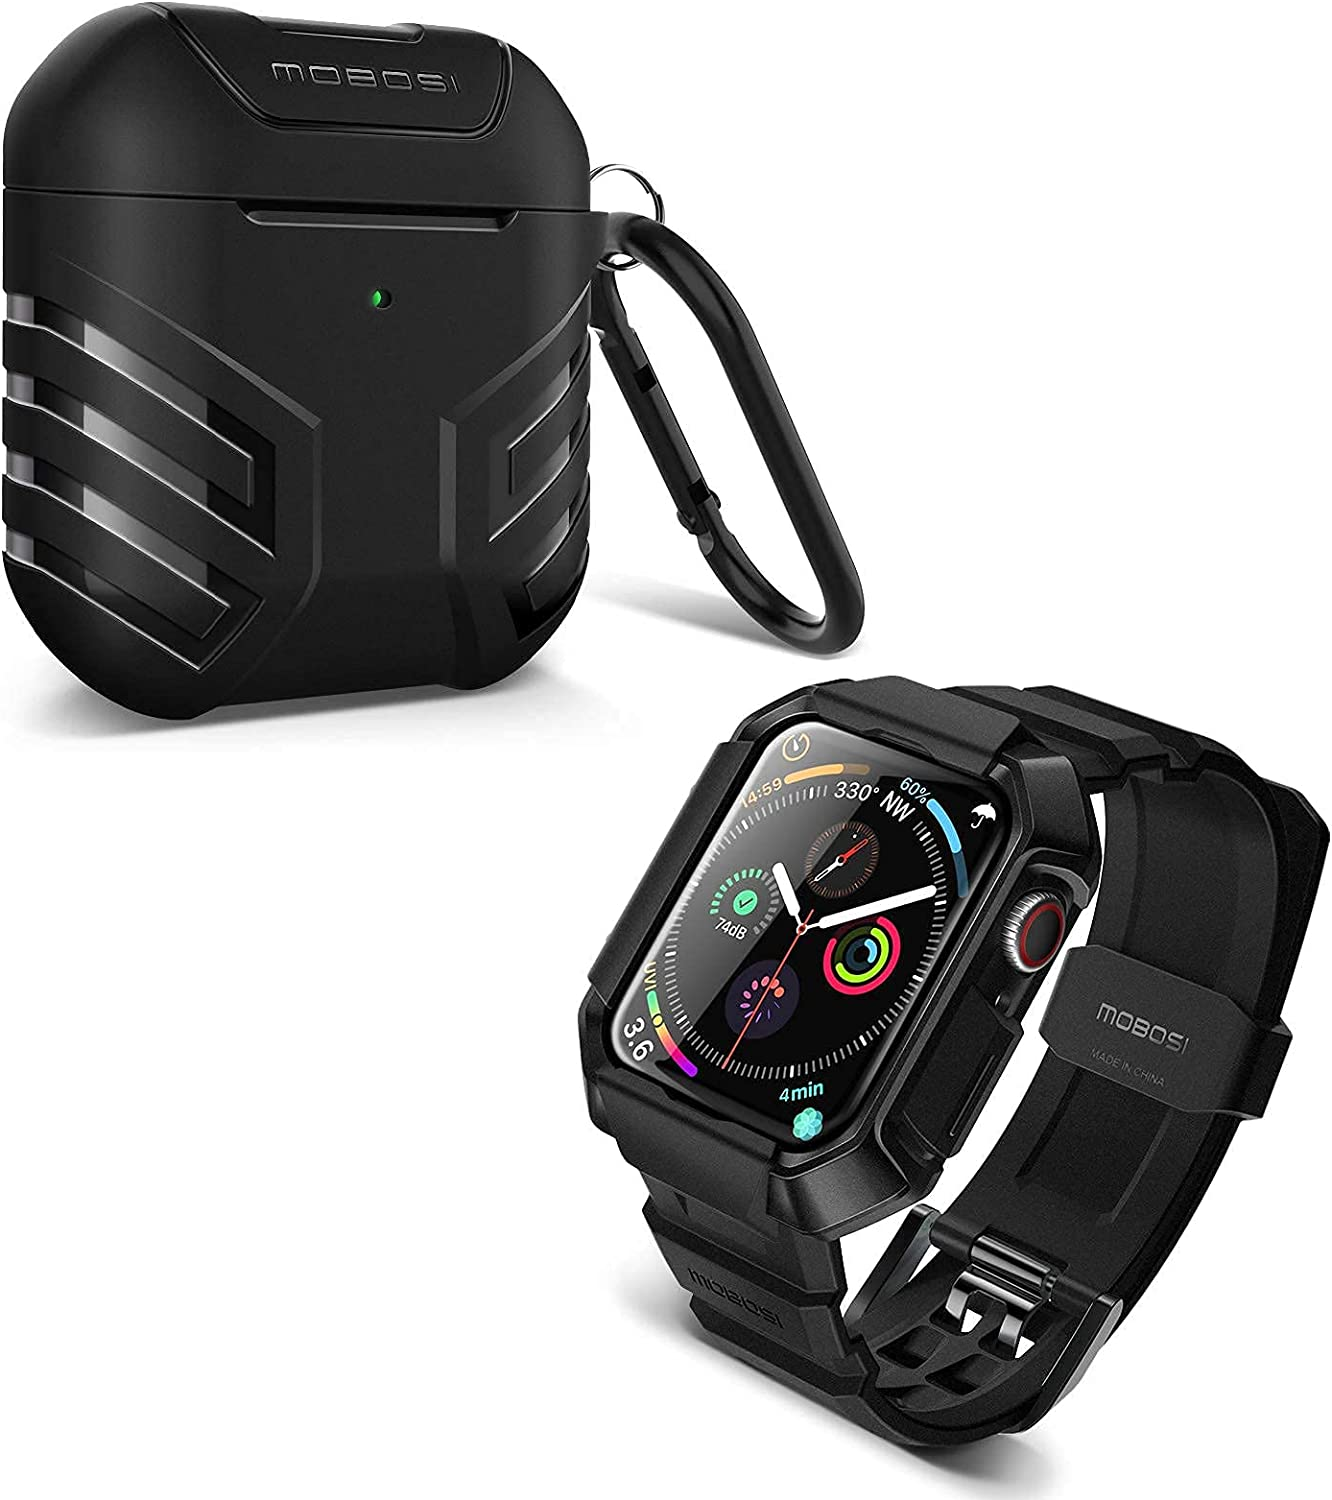 MOBOSI Swisper Series Compatible with Apple Watch Band 44mm Series 6/5/4/SE(Black) + MOBOSI Vanguard Armor AirPods Case Cover Designed for AirPods 2 & 1(Black)